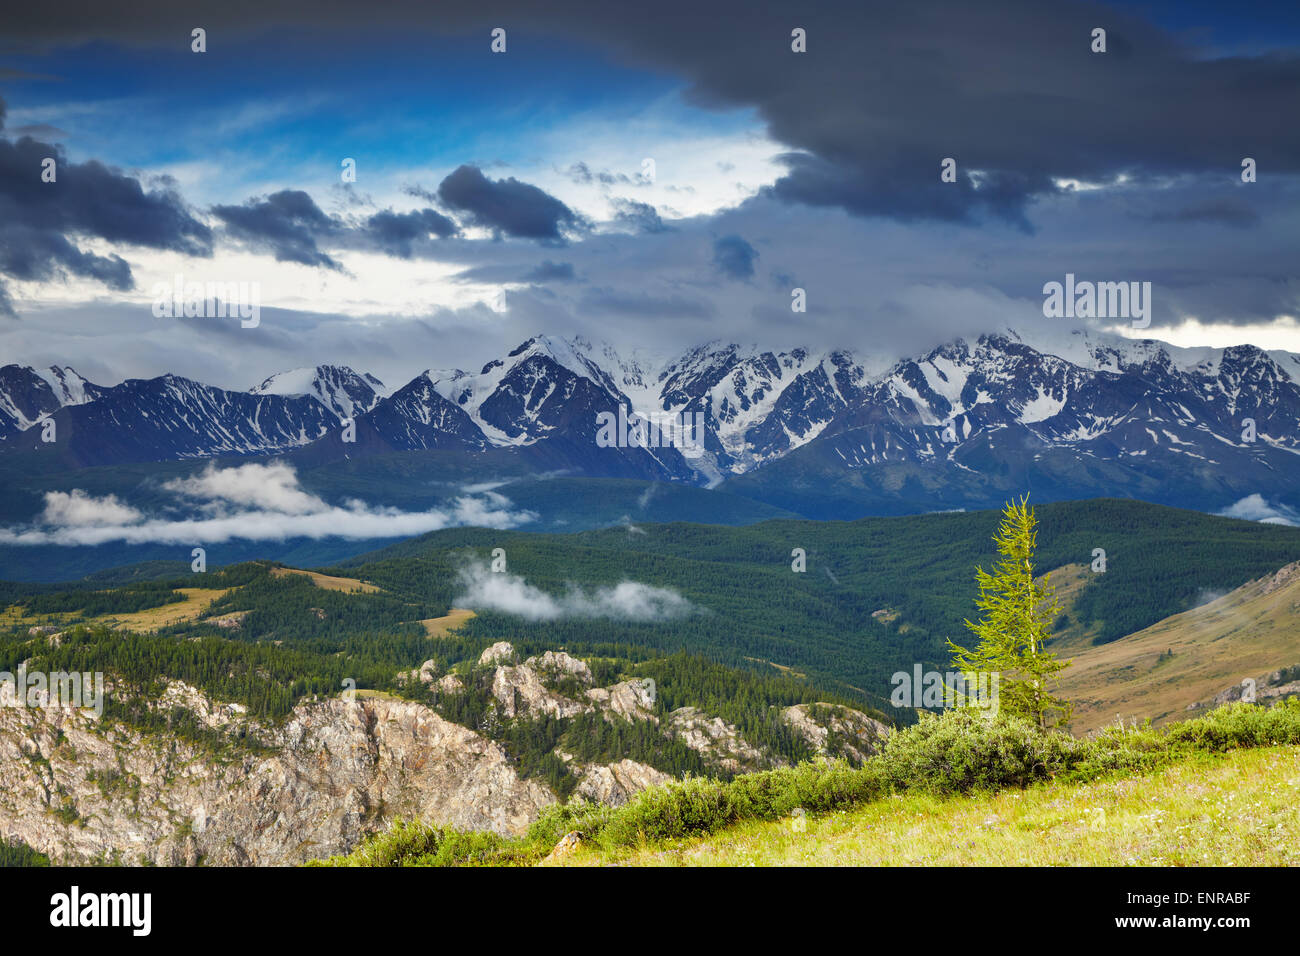 Landscape with snowy mountains and cloudy sky - Stock Image